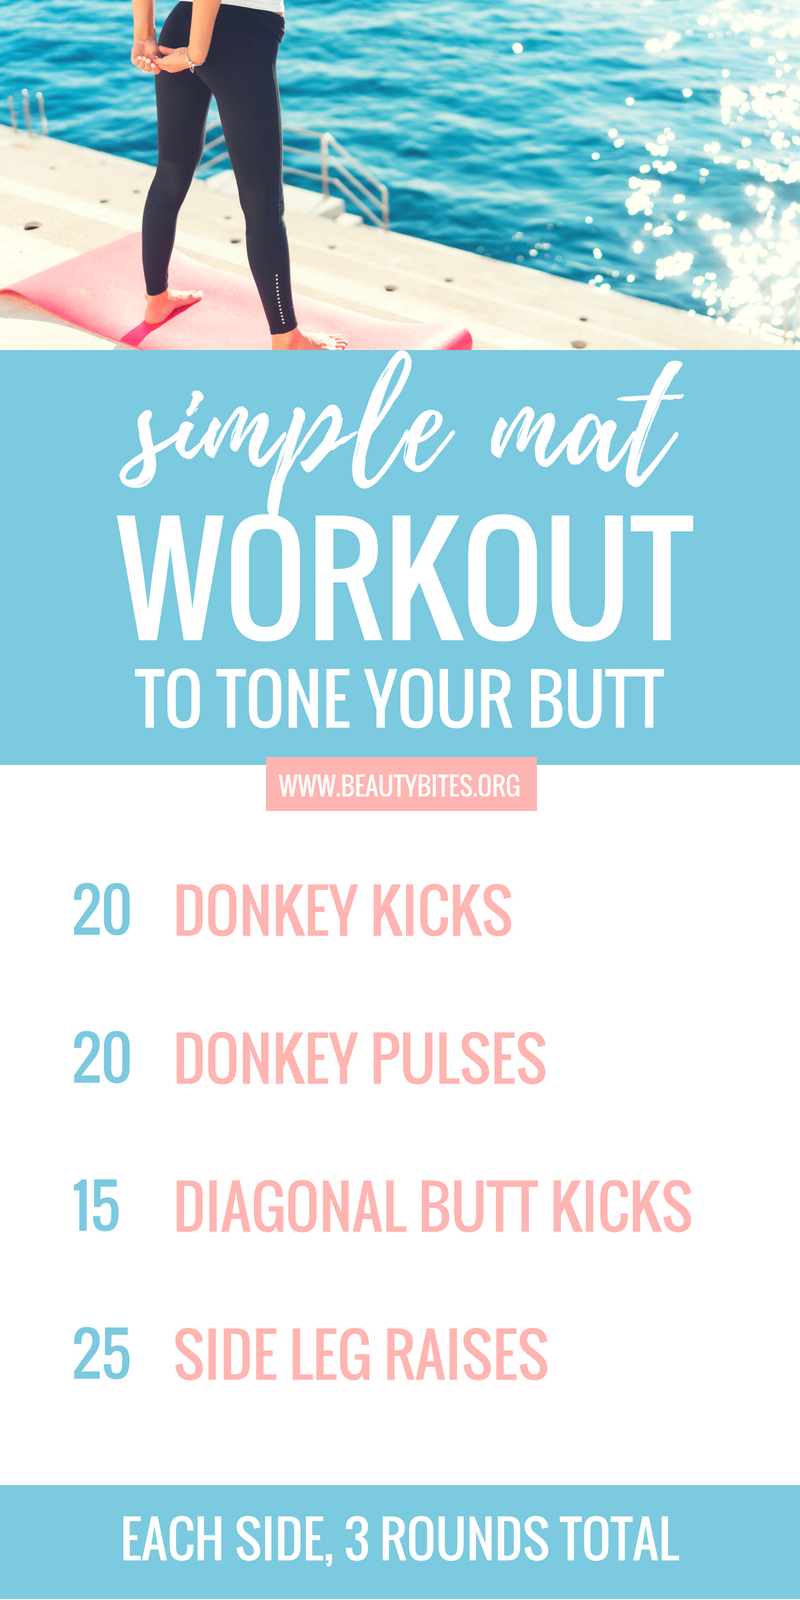 At home workout for rounder butt - you don't even need to leave your mat! There are 4 booty exercises that can help you get in better shape - this exercise routine is also suitable for beginners, but it's very efficient. | www.beautybites.org